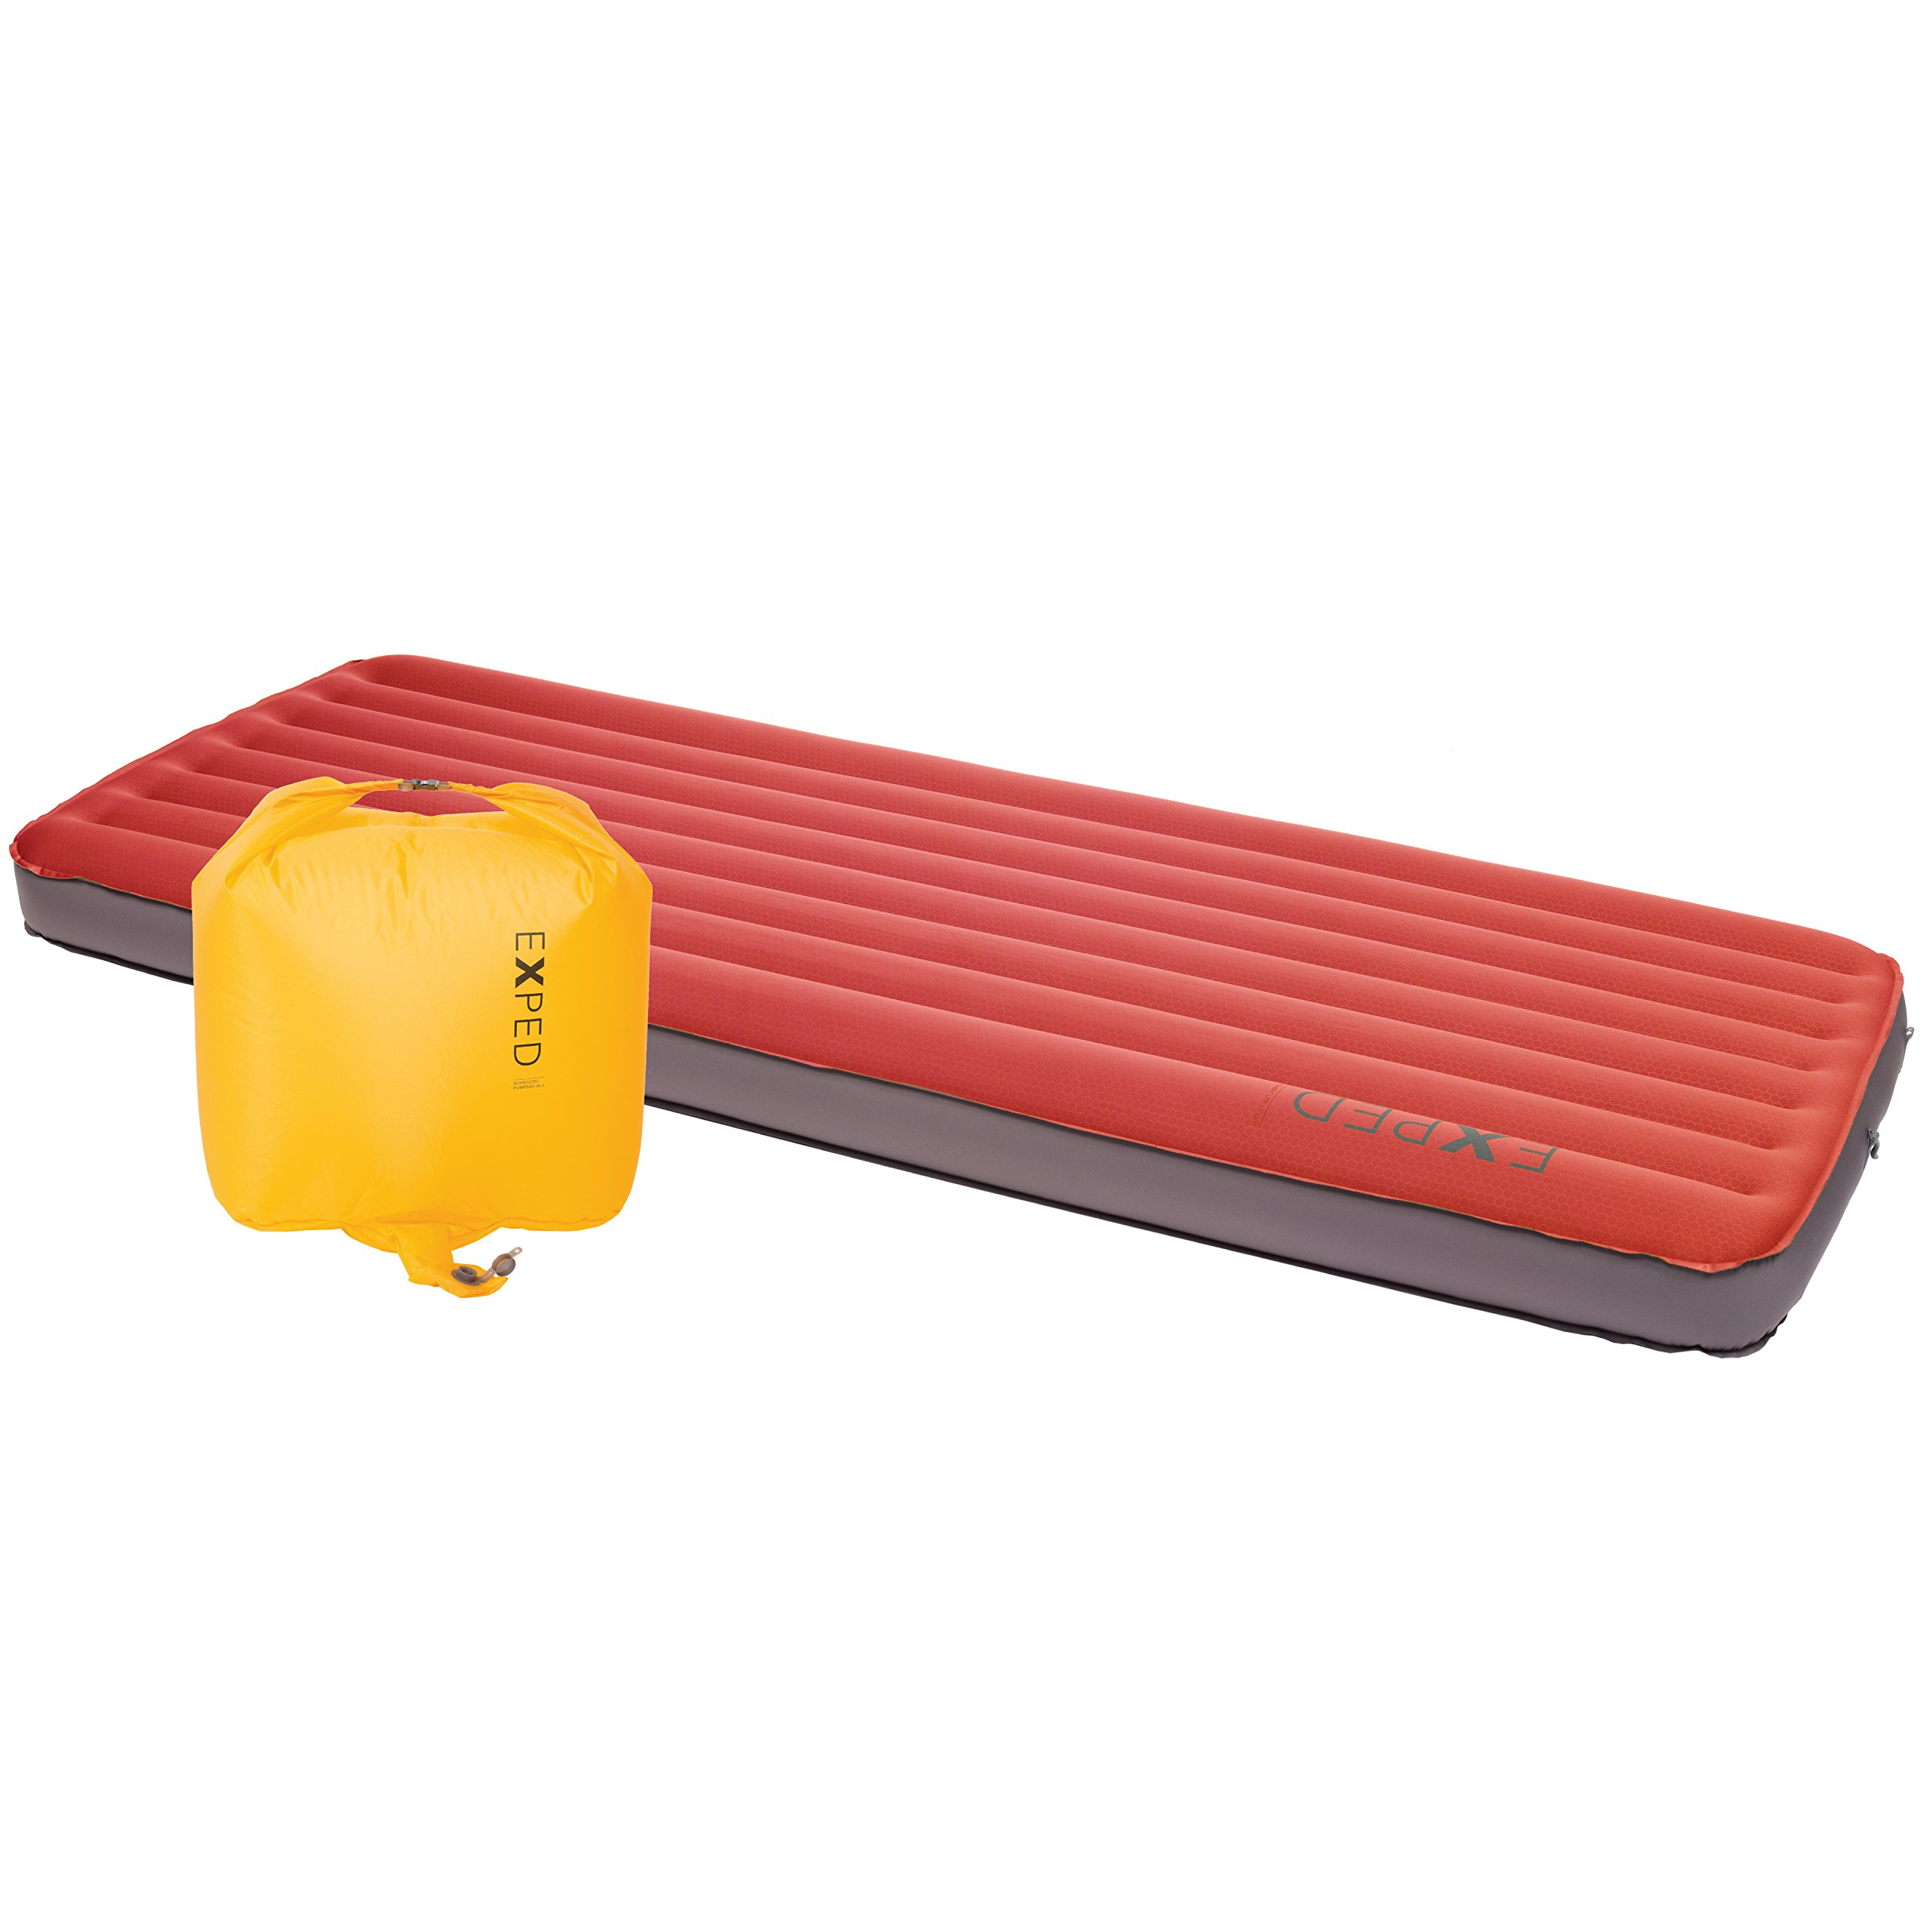 Exped MegaMat Lite 12 Sleeping Pad, Ruby Red, Large X-Wide by Exped